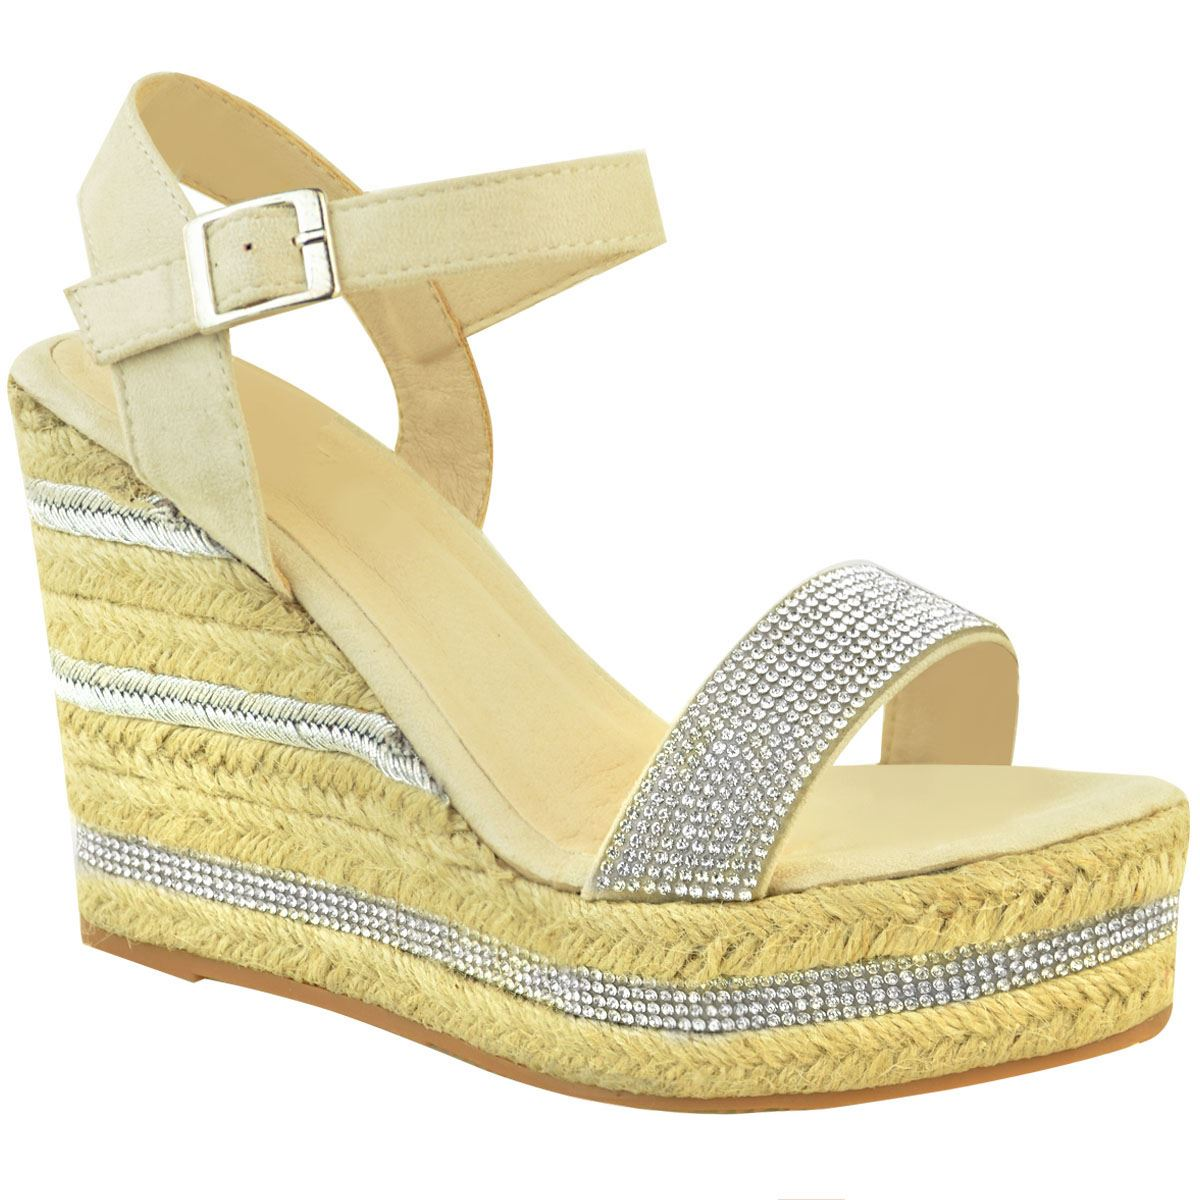 Womens-Ladies-Wedged-High-Heel-Sandals-Raffia-Diamante-Party-Shoes-Summer-Size thumbnail 3